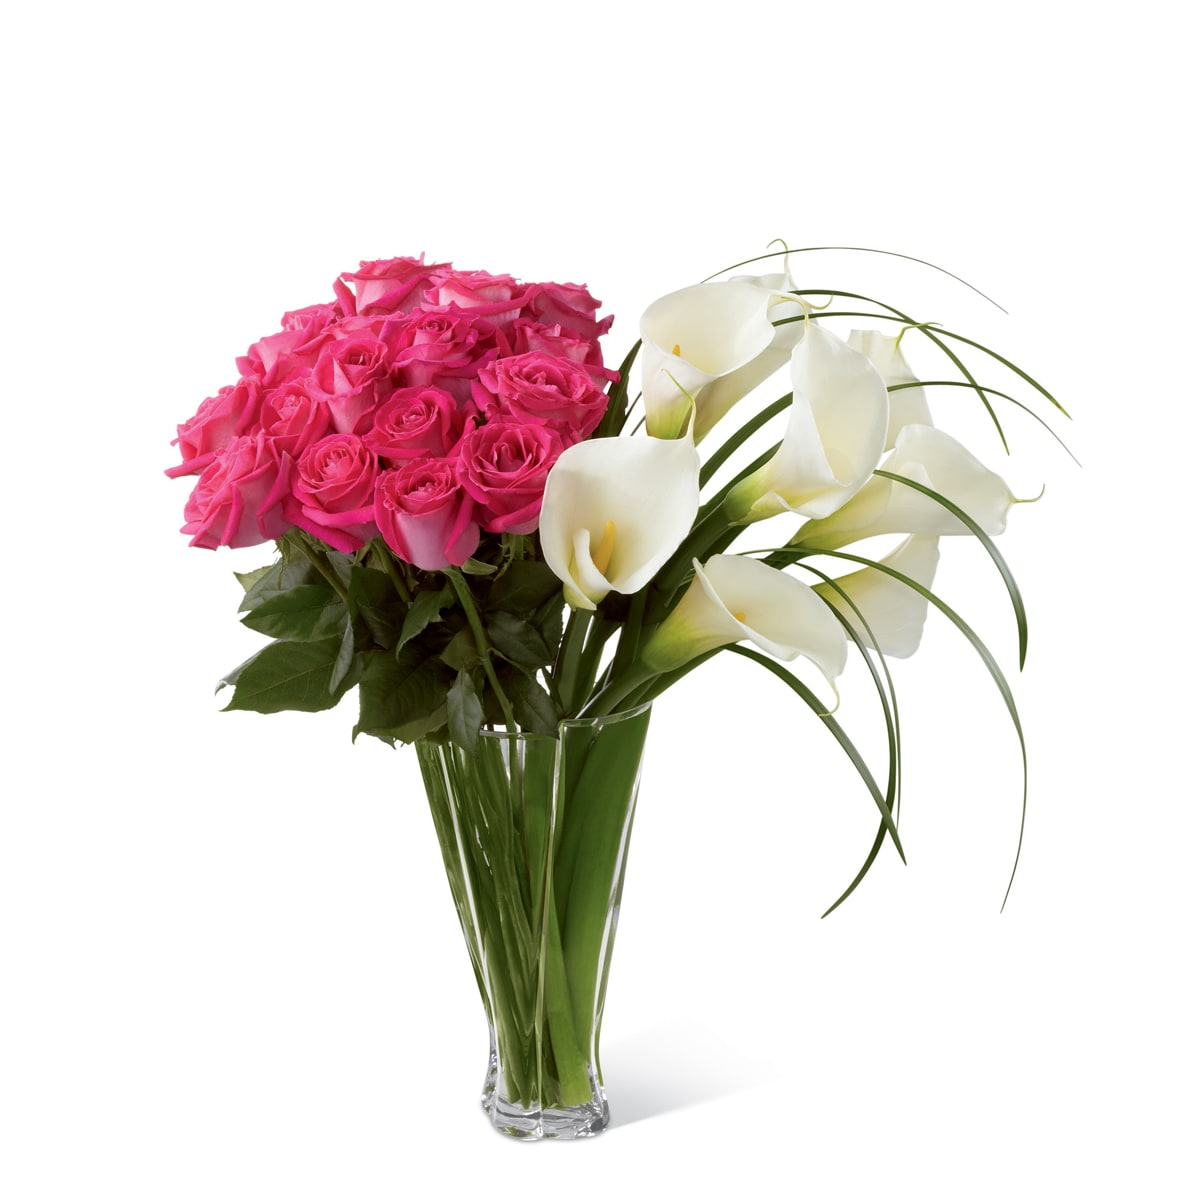 The FTD® Irresistible™ Luxury Bouquet